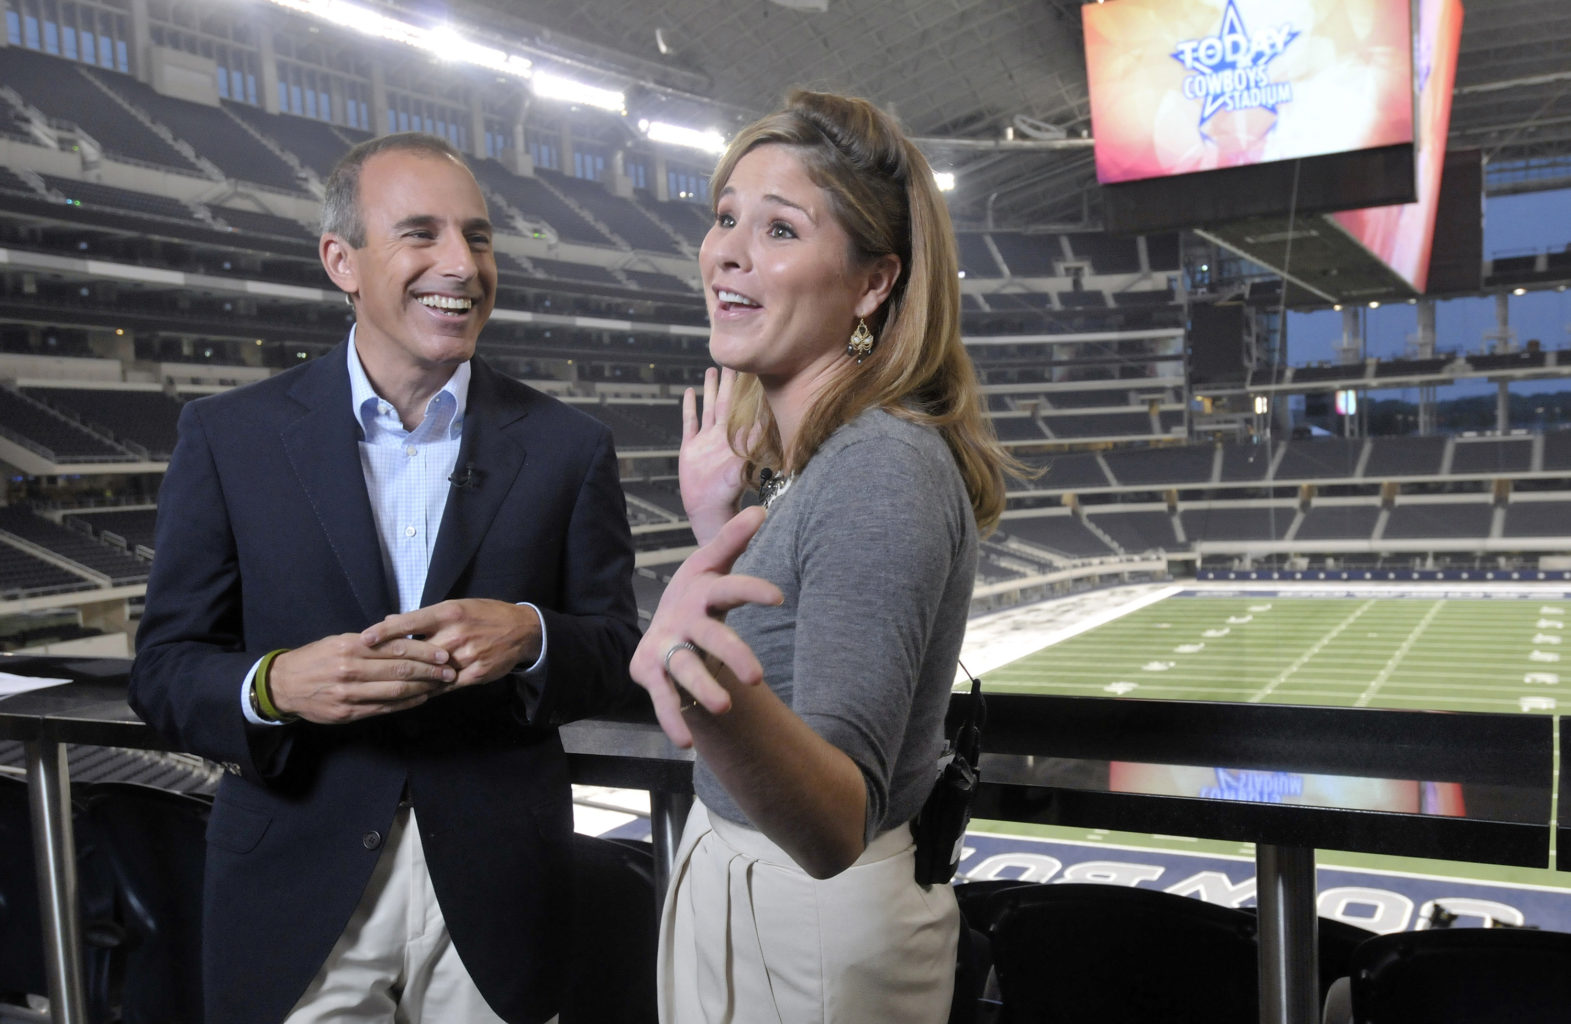 Jenna Bush Hager, right, shares a laugh with Today Show host Matt Lauer as she makes her debut broadcast live from the new Cowboys Stadium, Friday, September 18, 2009, in Arlington, Texas. (Max Faulkner/Fort Worth Star-Telegram/TNS)